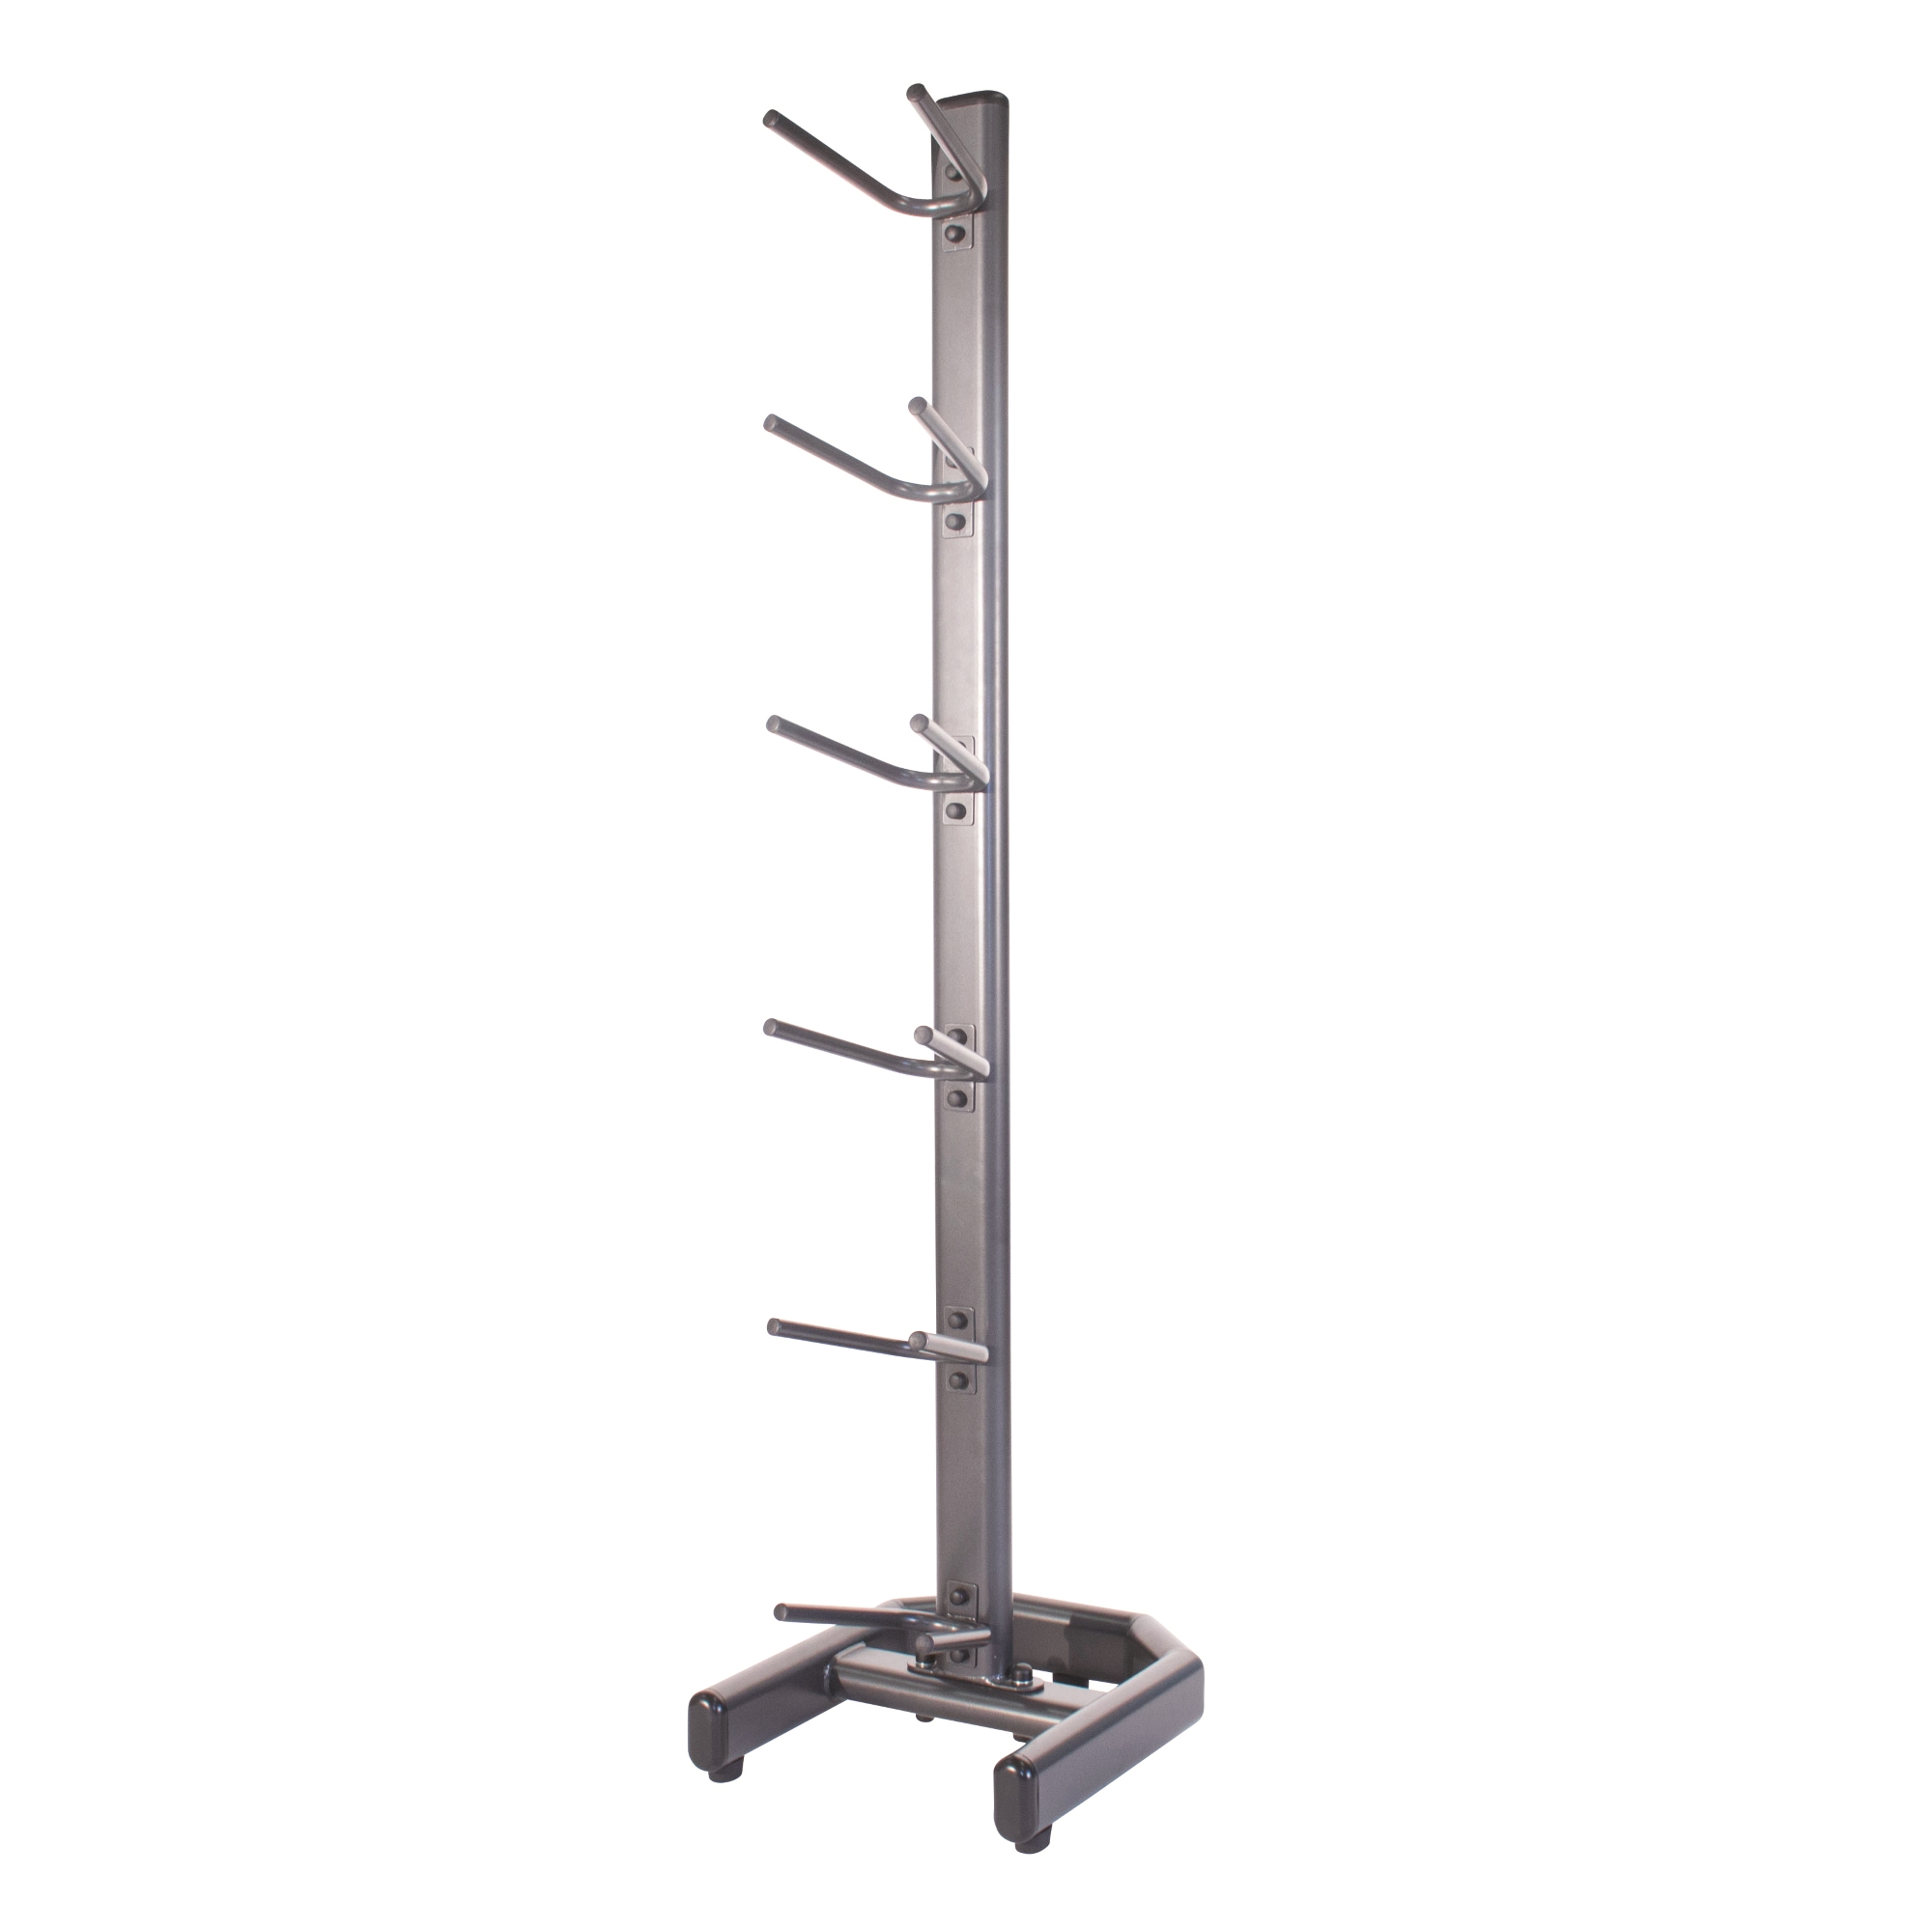 New - 5 Ball Medicine Rack